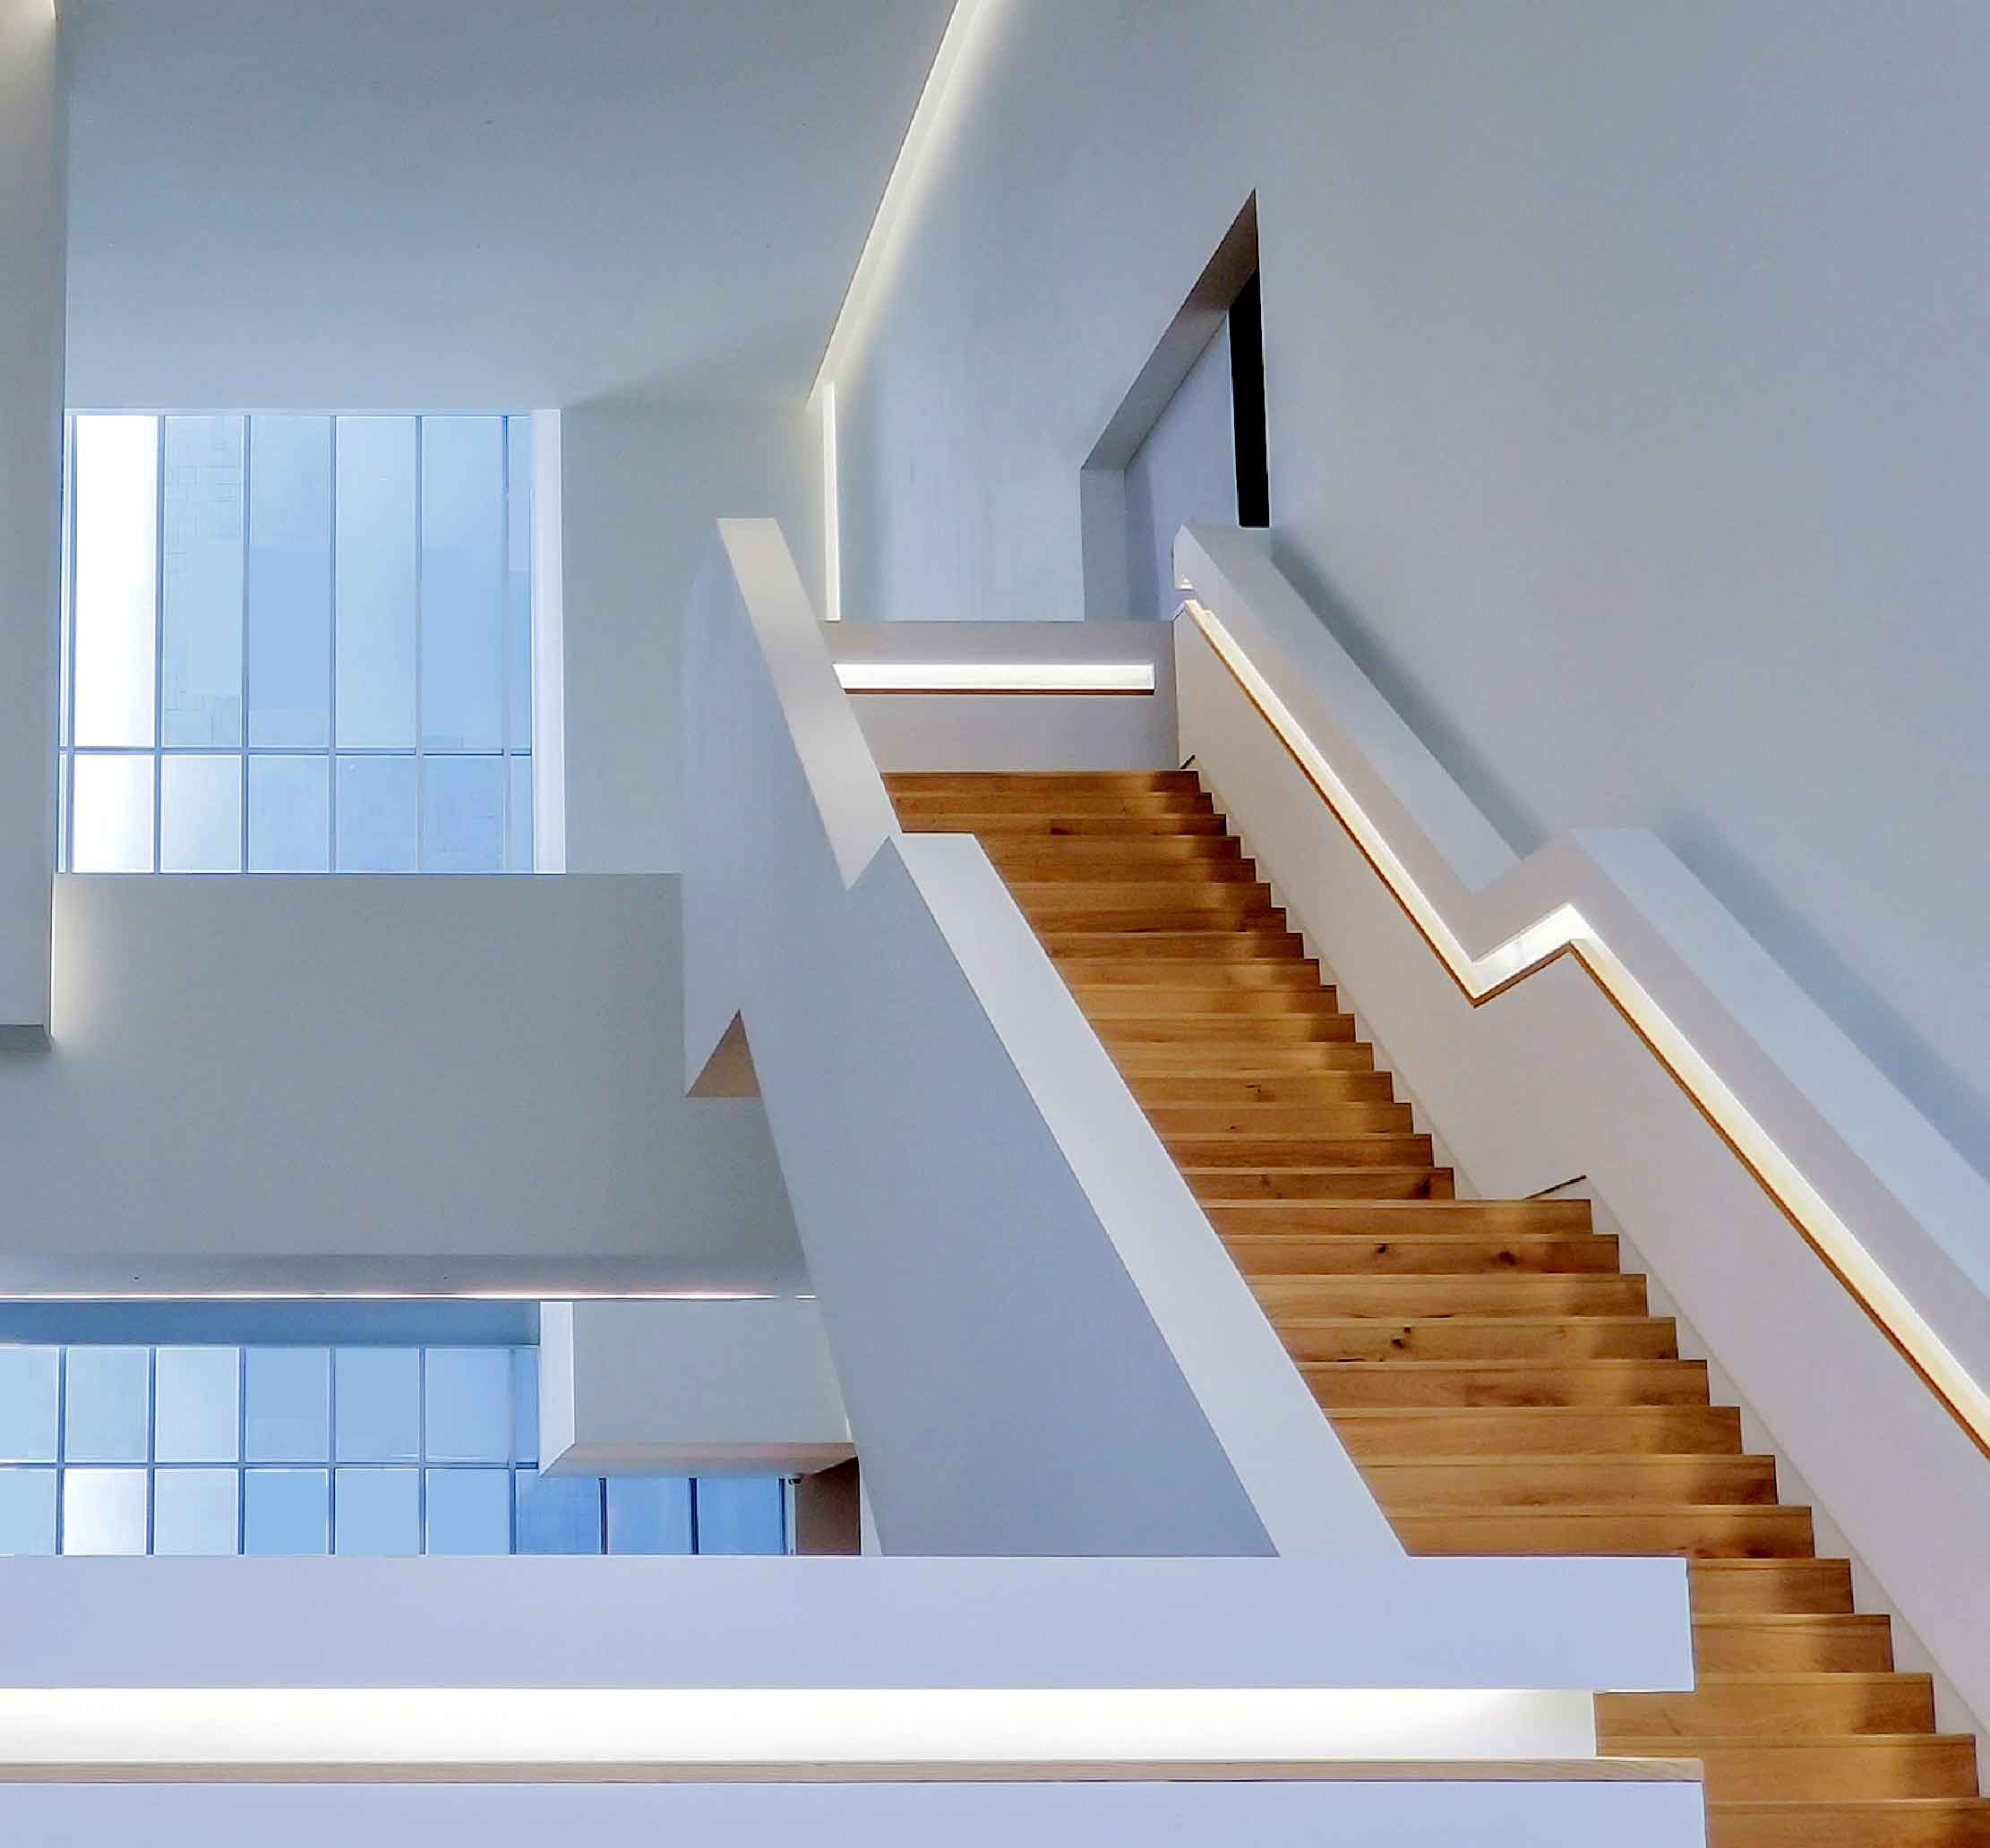 photo of upper stairwell for blog on cost of loft conversions